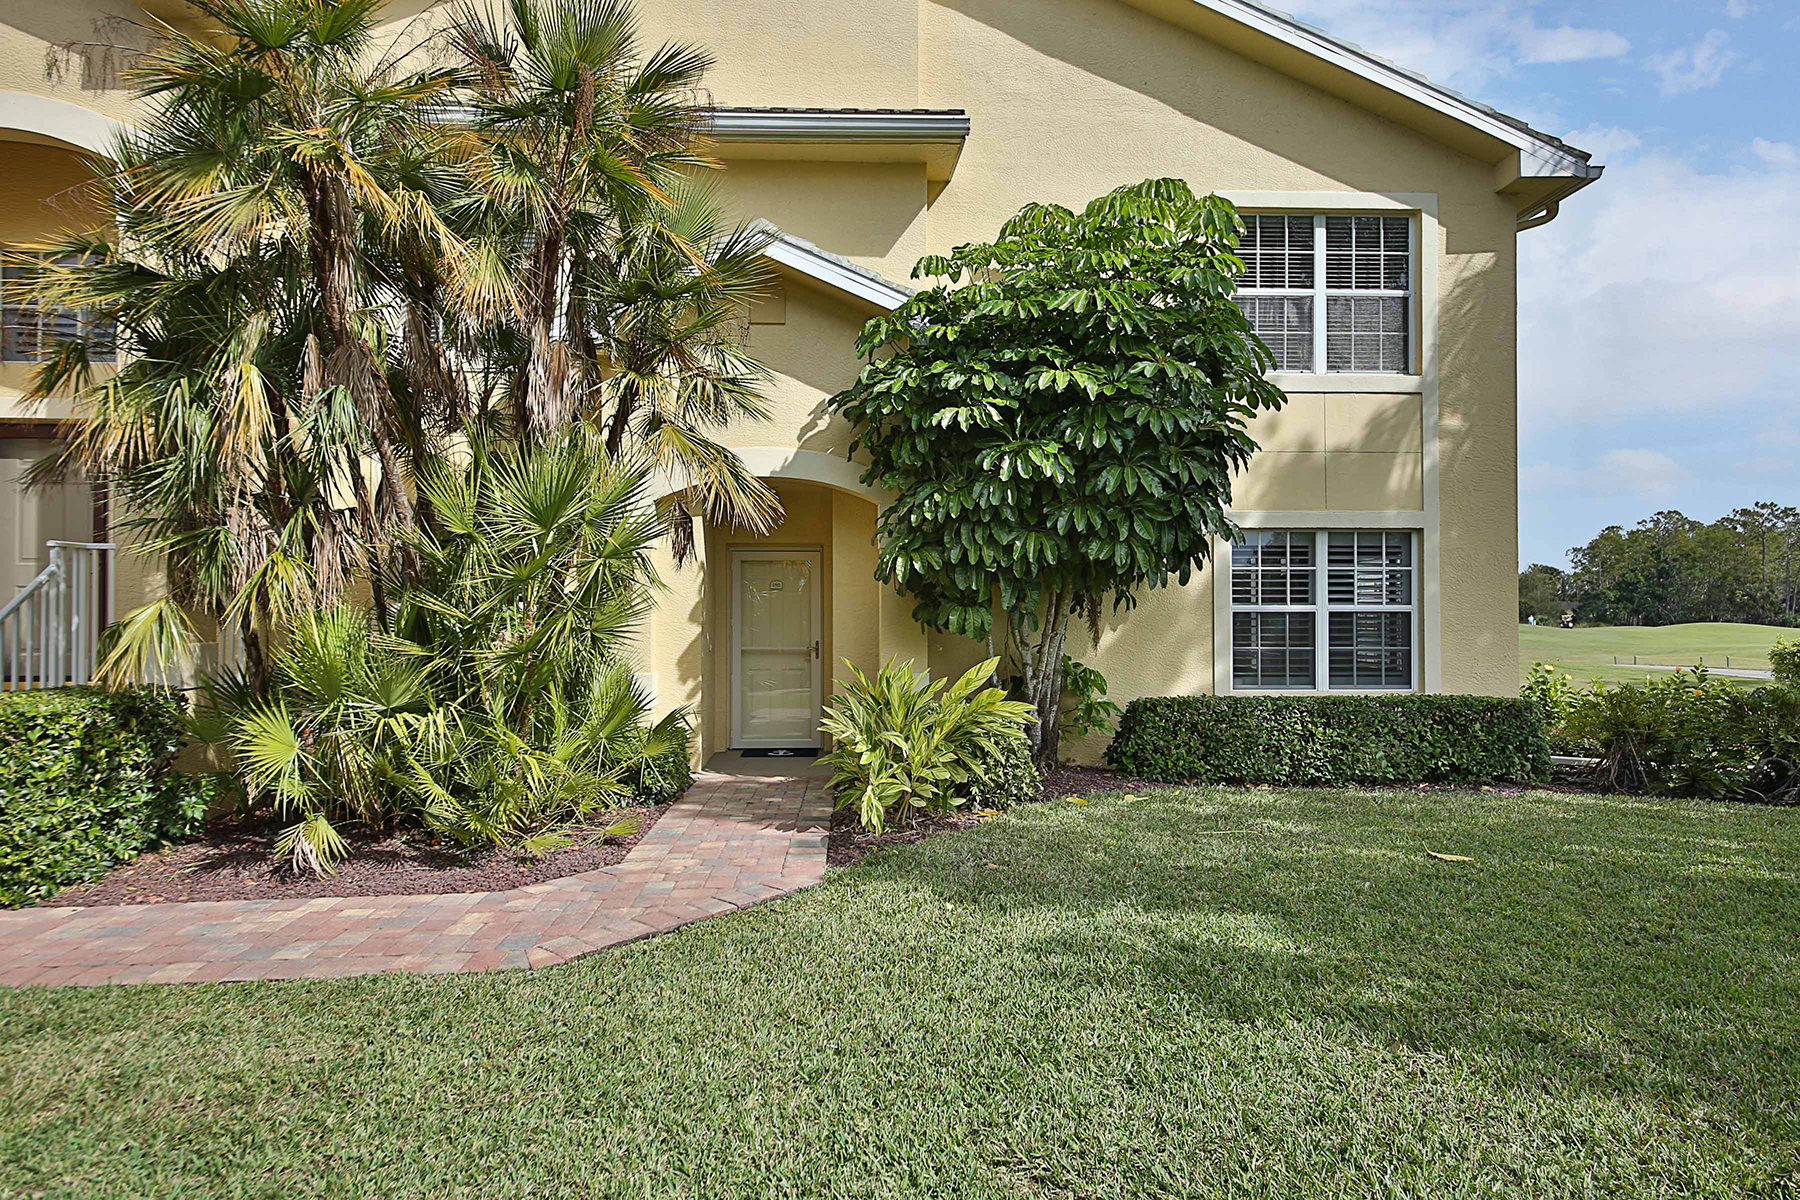 Condominium for Rent at THE STRAND - CLUBSIDE 5892 Three Iron Dr 1502, Naples, Florida 34110 United States